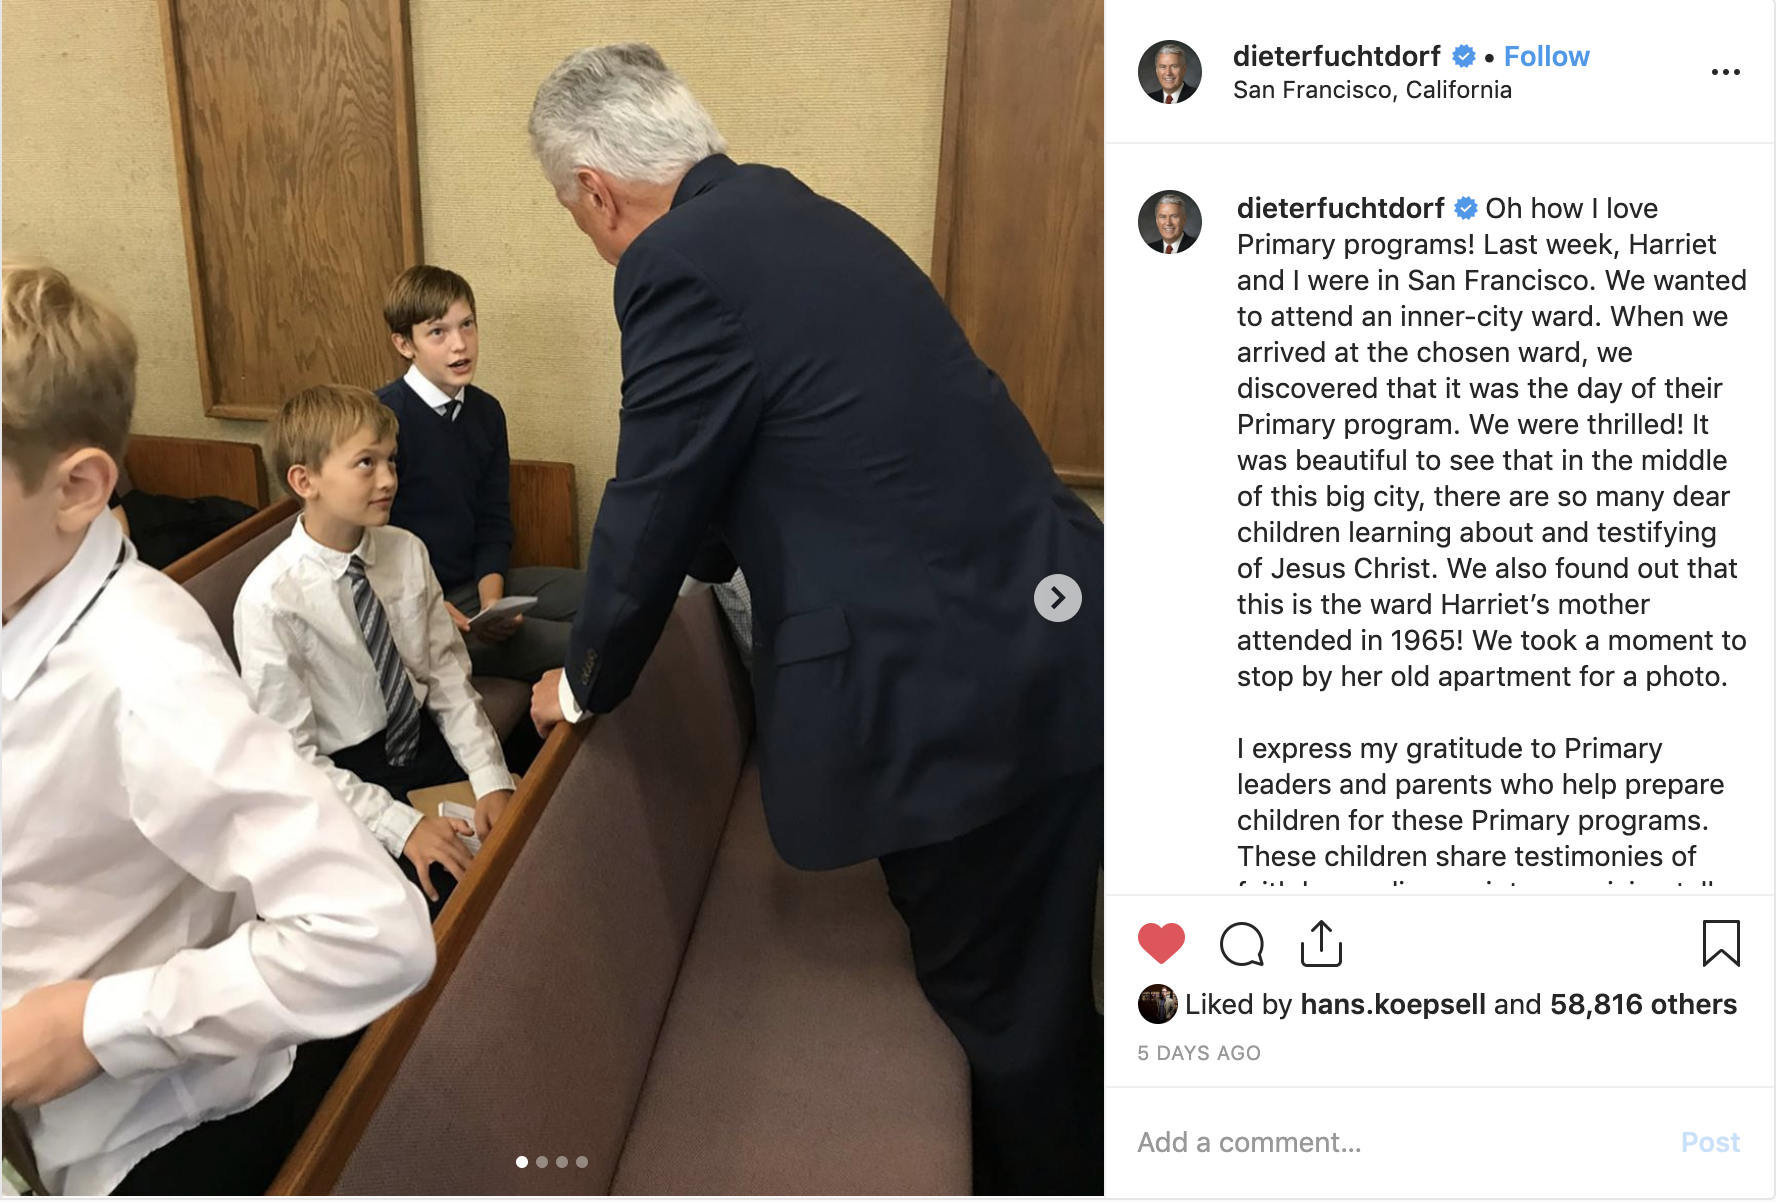 Elder Dieter F. Uchtdorf and his wife, Sister Harriet Uchtdorf, recently visited a ward in San Francisco and were thrilled to discover the Primary program would be held that day. Instagram screenshot taken Nov. 8, 2019.